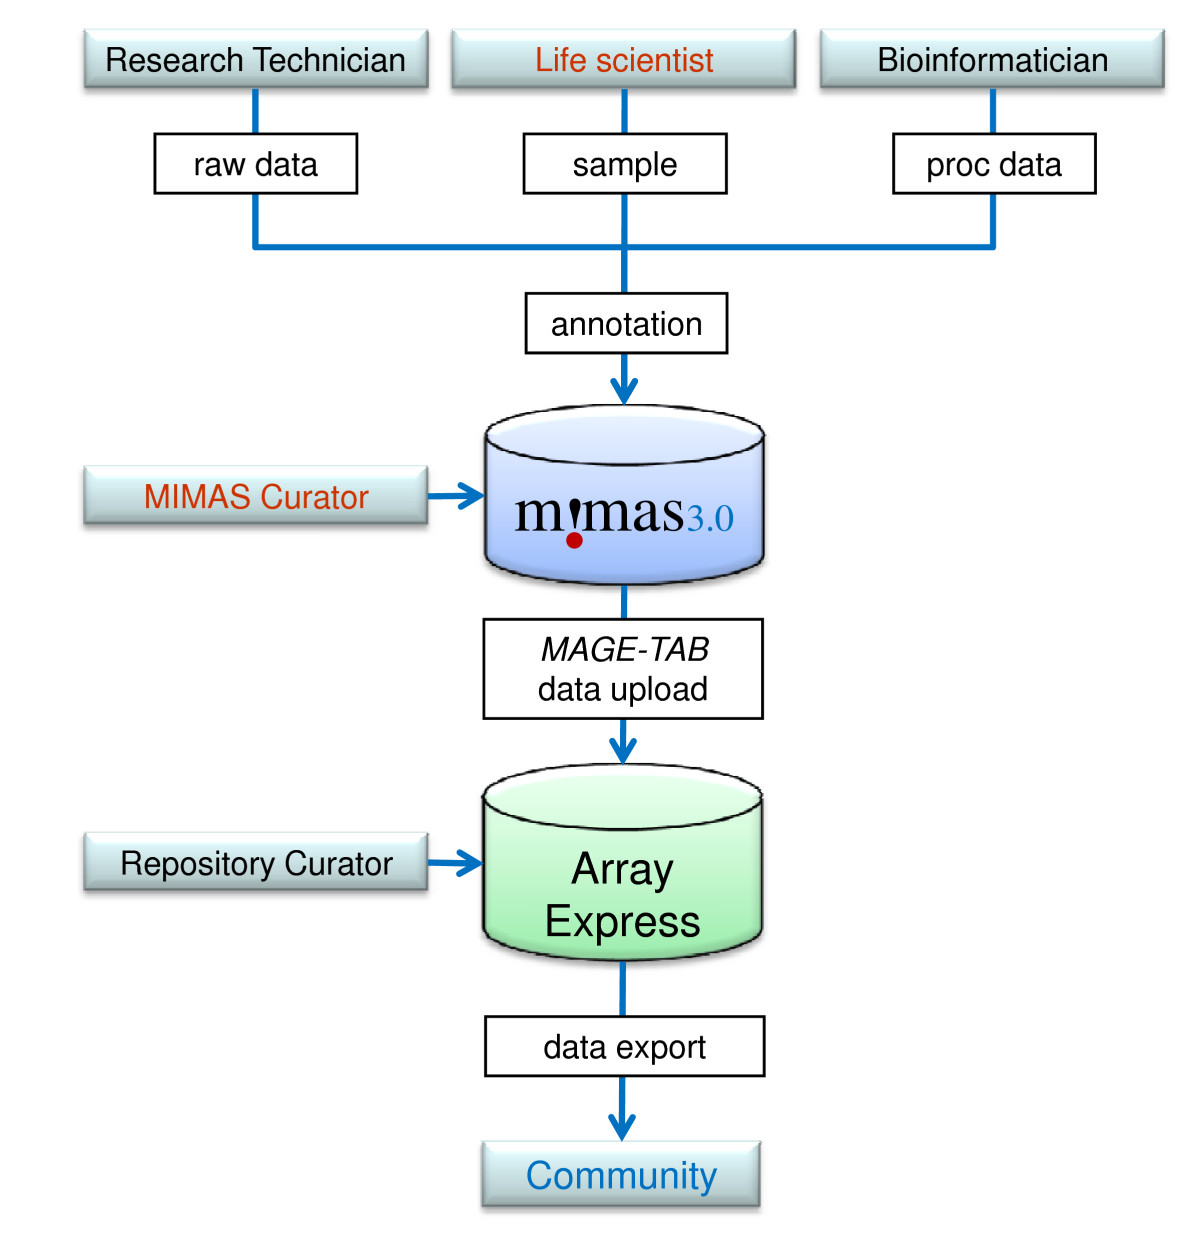 http://static-content.springer.com/image/art%3A10.1186%2F1471-2105-10-151/MediaObjects/12859_2009_Article_2881_Fig1_HTML.jpg